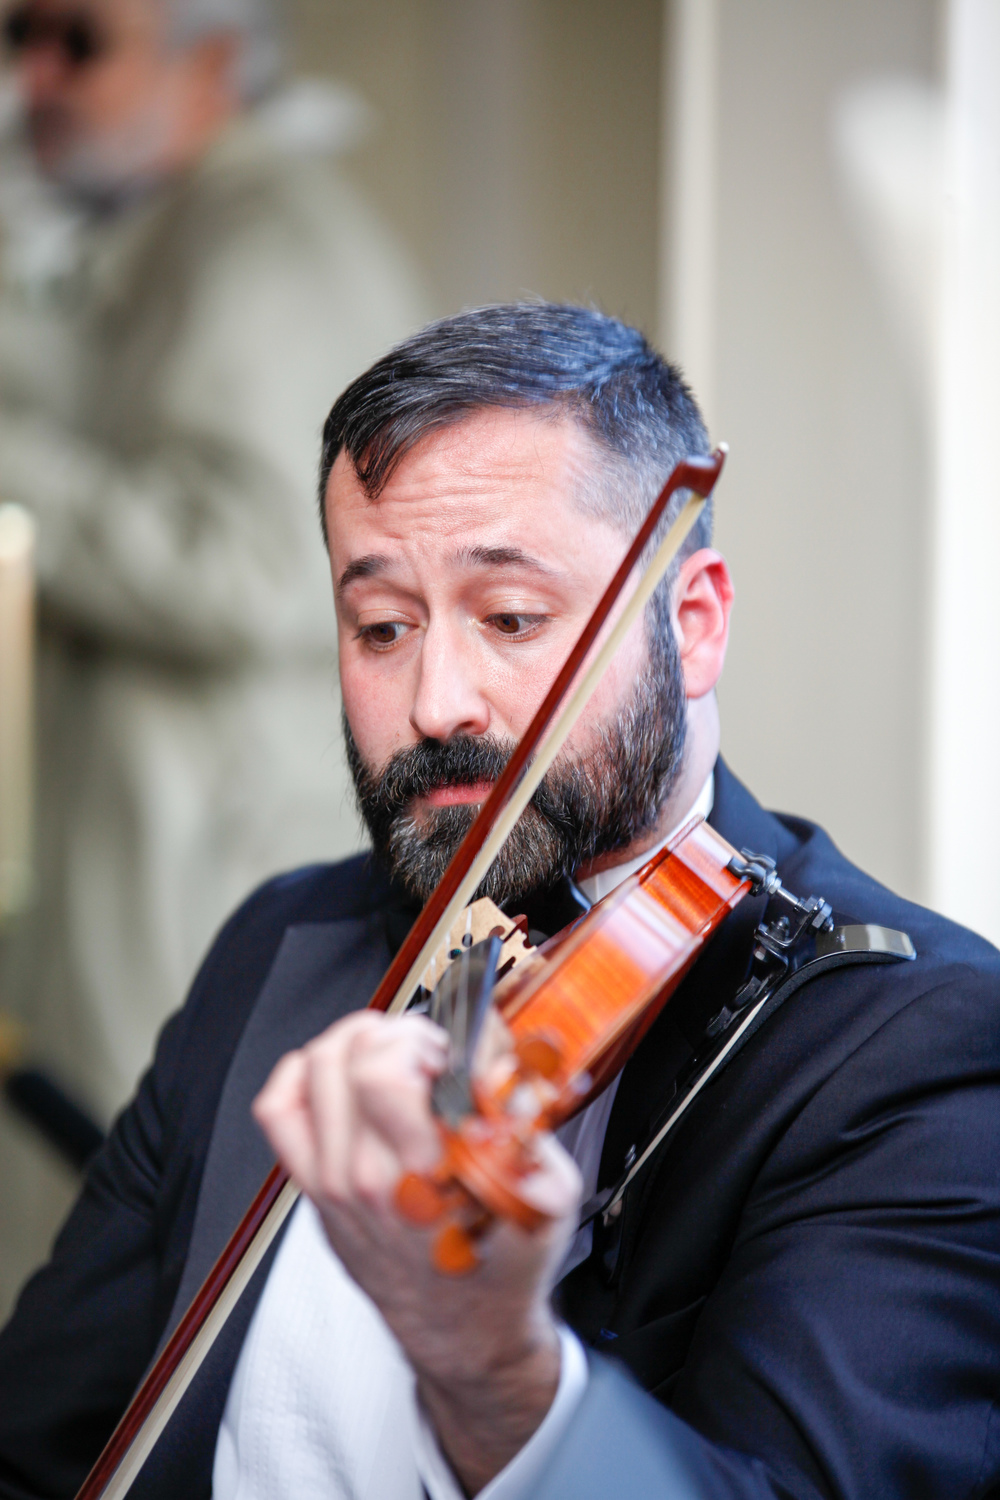 Christopher Souza, Violin